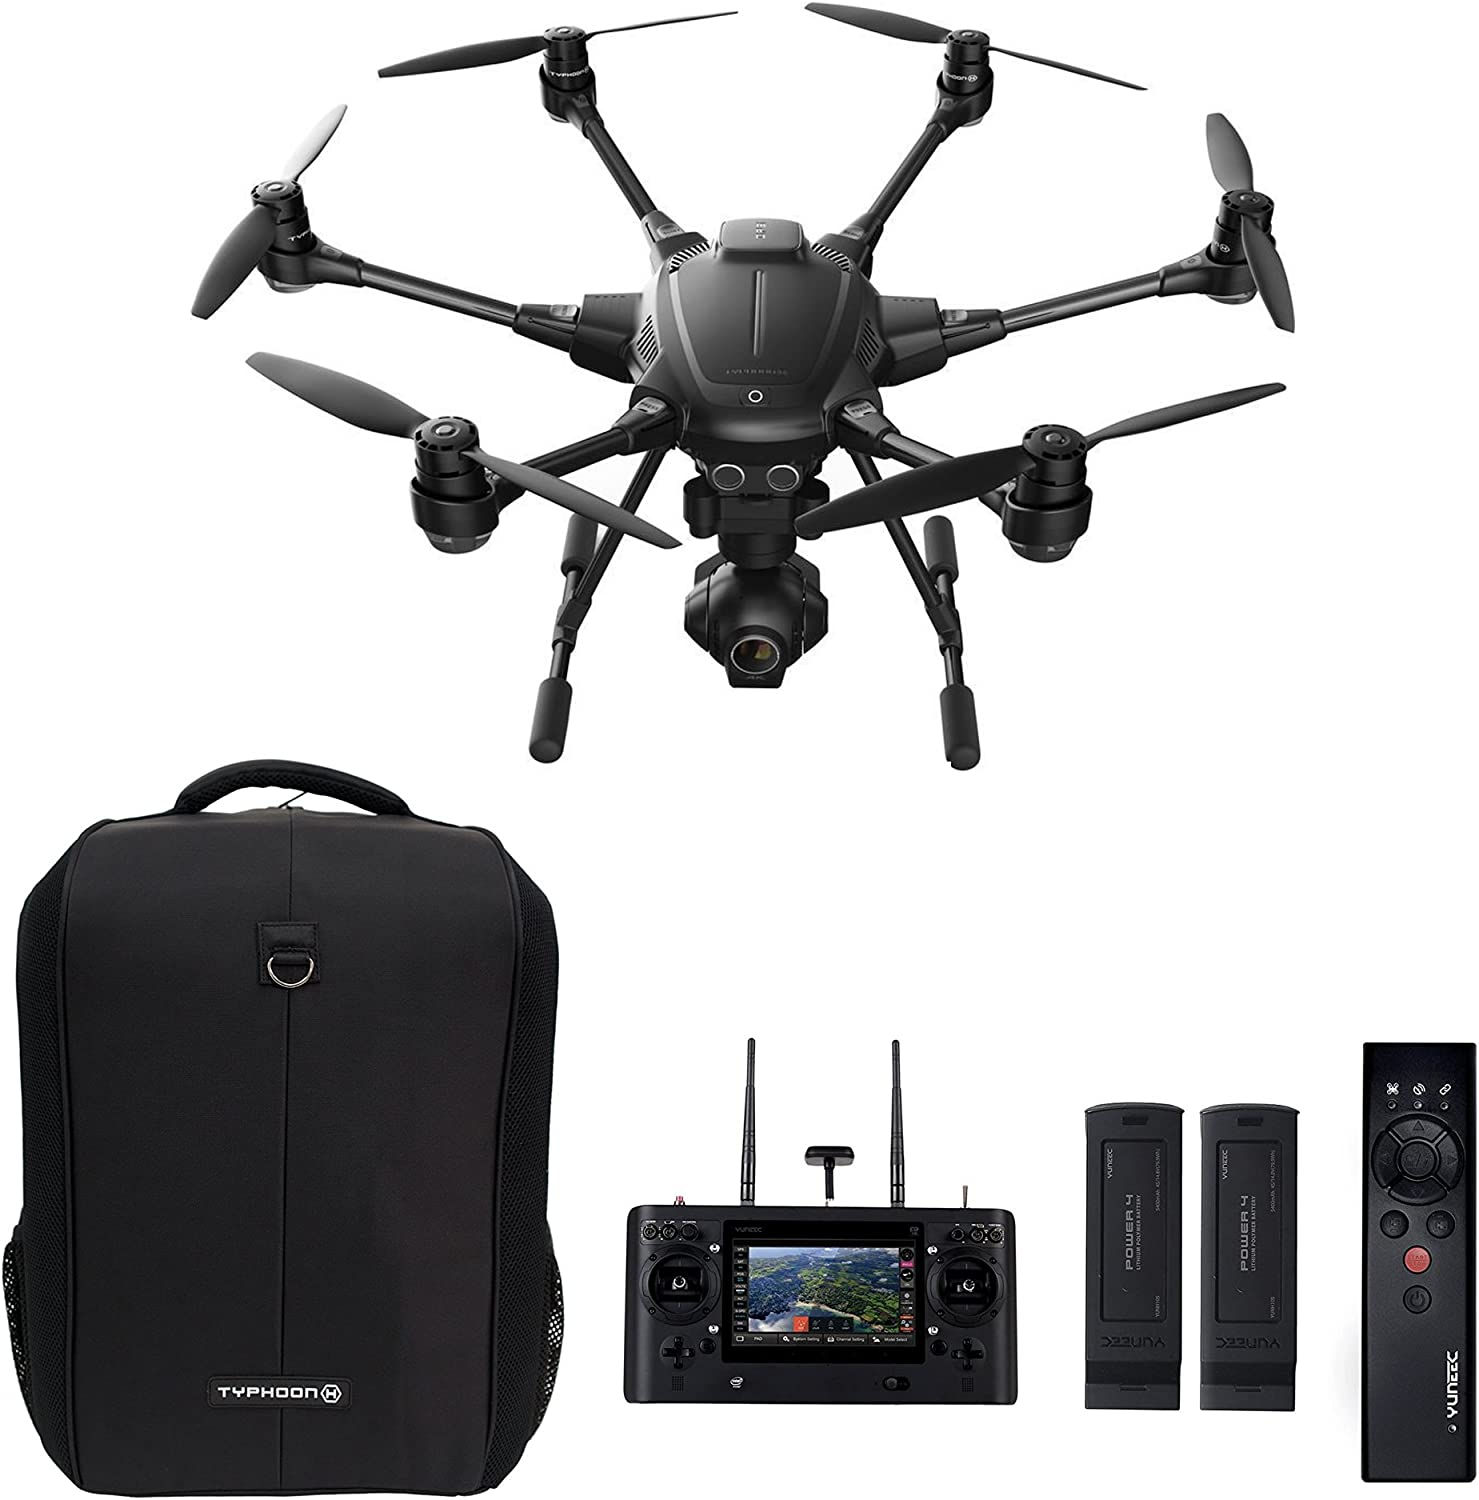 Yuneec Typhoon H Drone is at # 5 for best drones under 1000 dollars